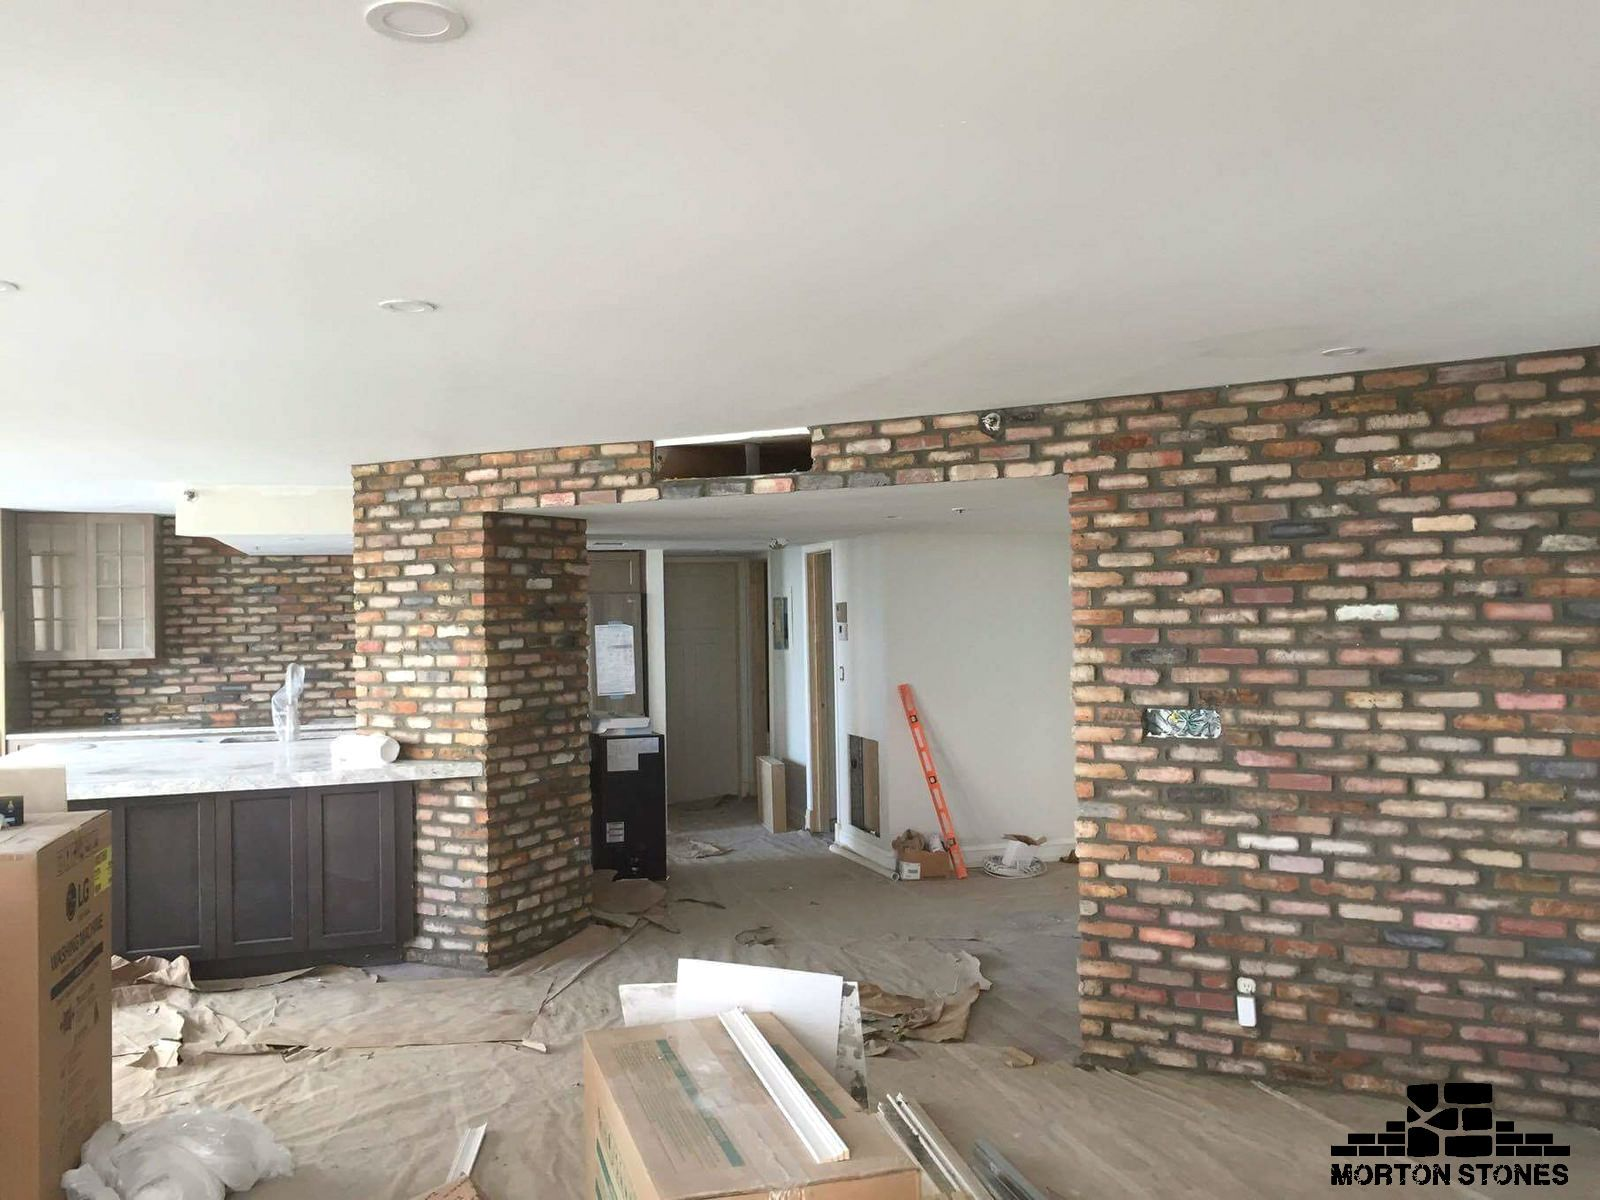 Brick Walls Add Warmth And Character To The Home Mortonstones